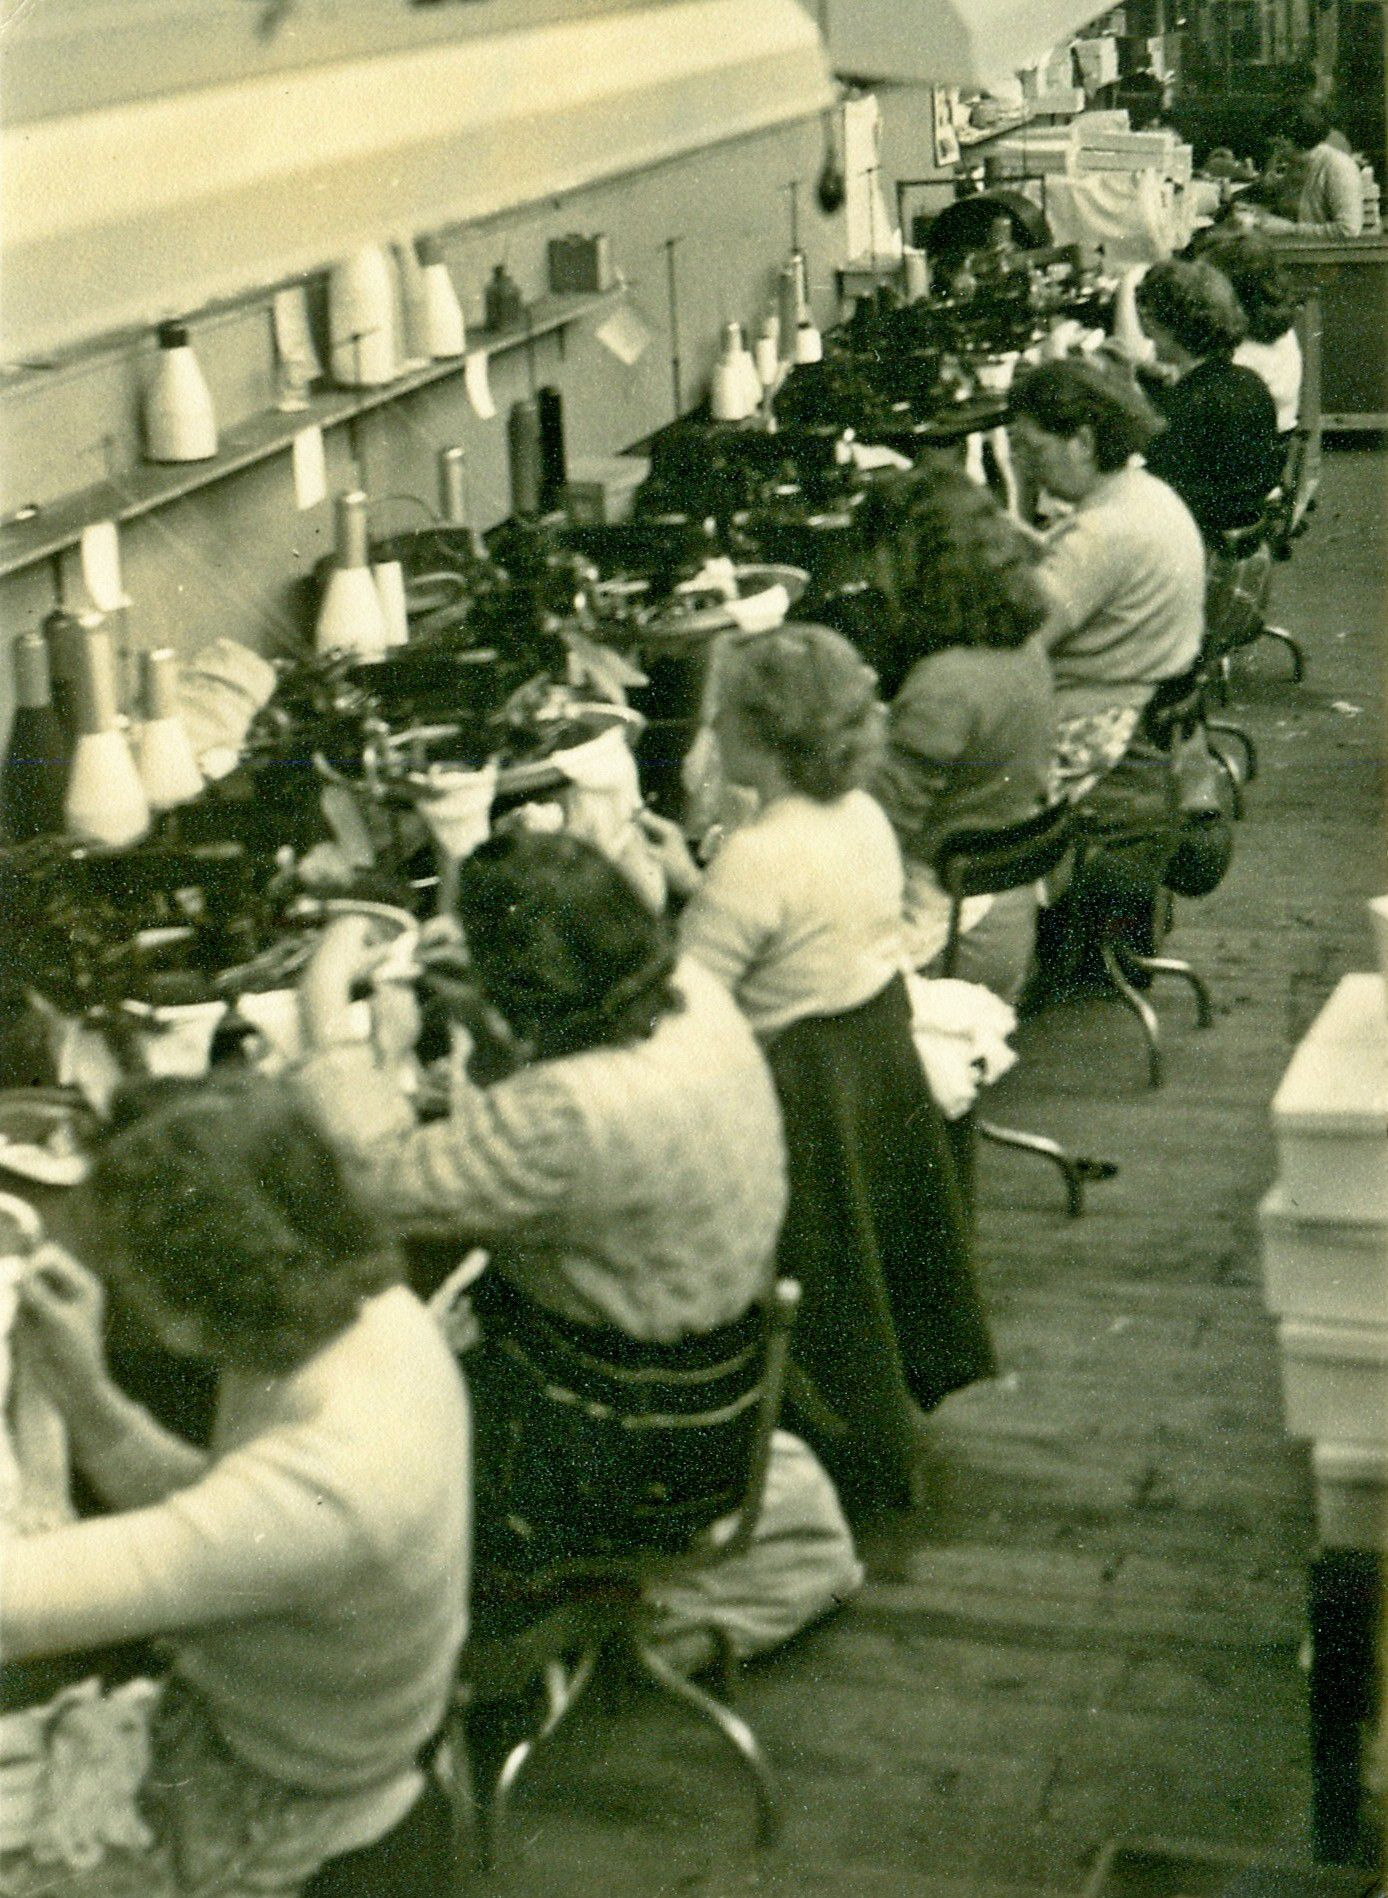 Skilled employees hand-linking the toes of Pantherella Fine English Socks in the late 1940s - it is still done in exactly the same way today, in exactly the same factory!